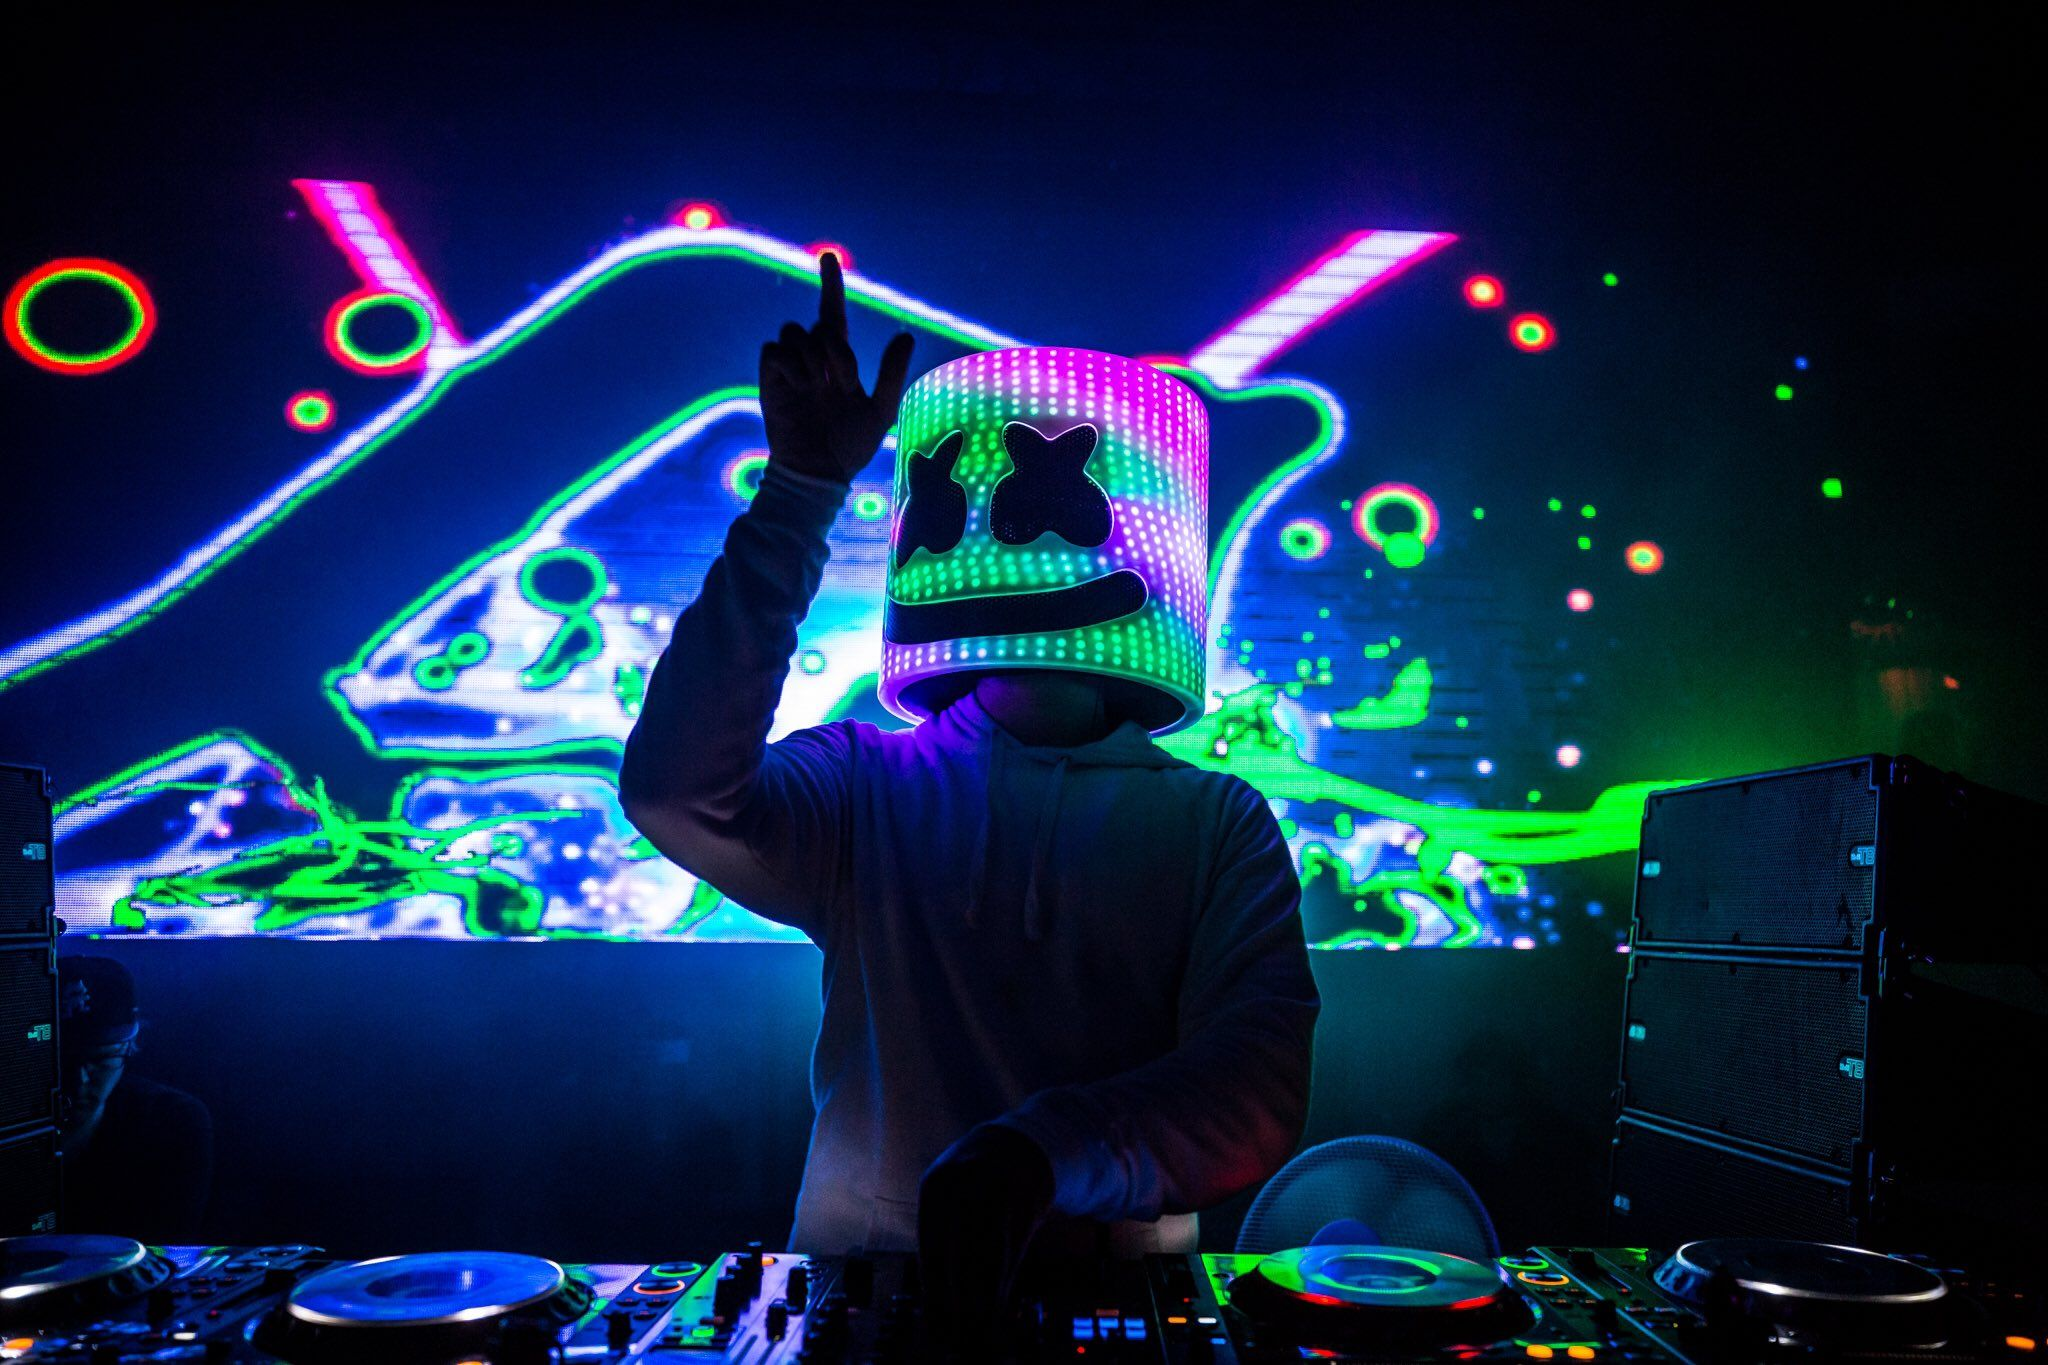 marshmello dj hd | marshmello dj wallpapers | pinterest | dj, edm